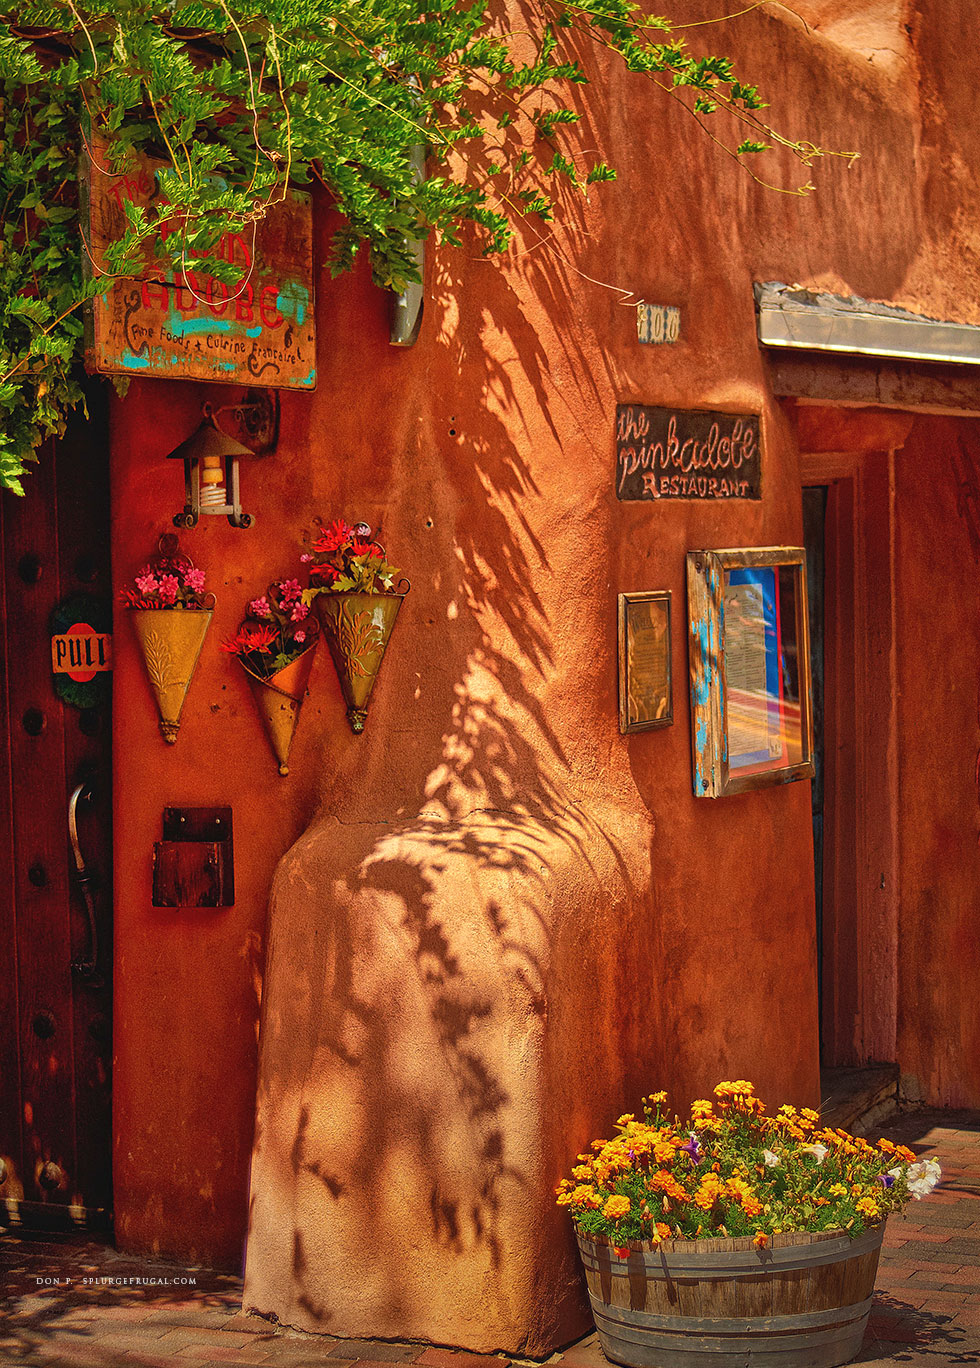 Santa Fe, New Mexico restaurants